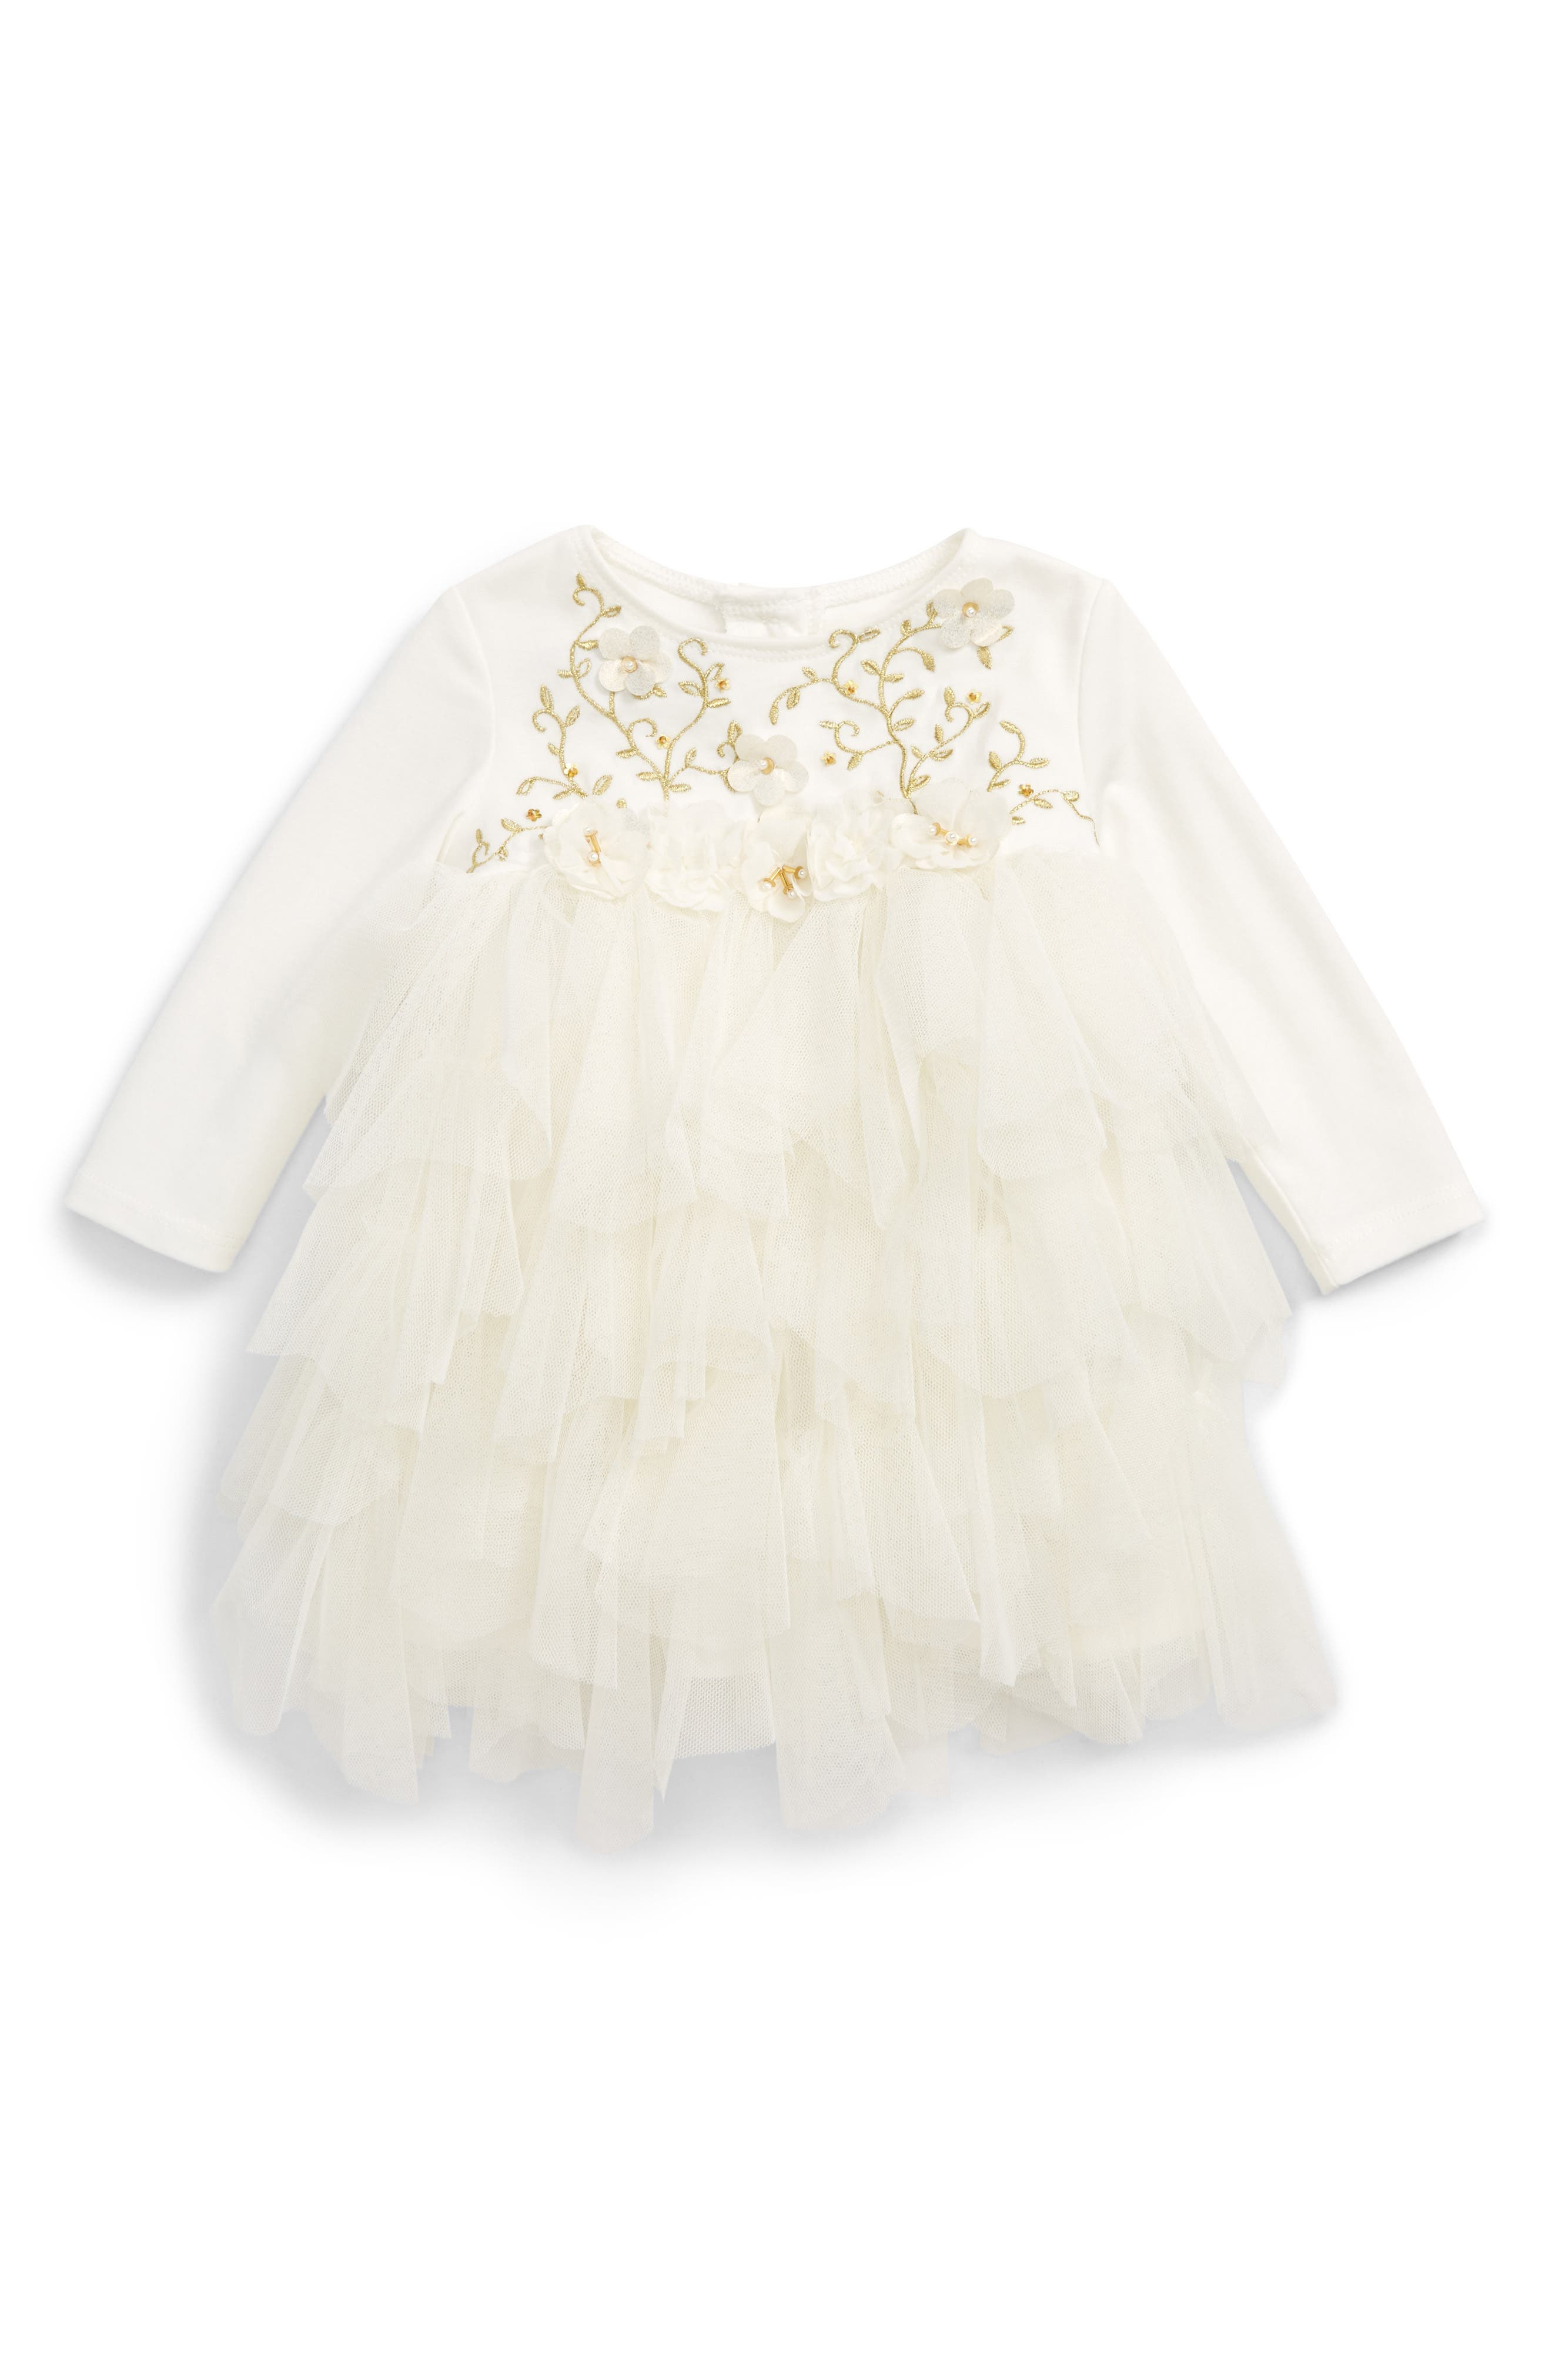 Embroidered Bodice Dress,                         Main,                         color,